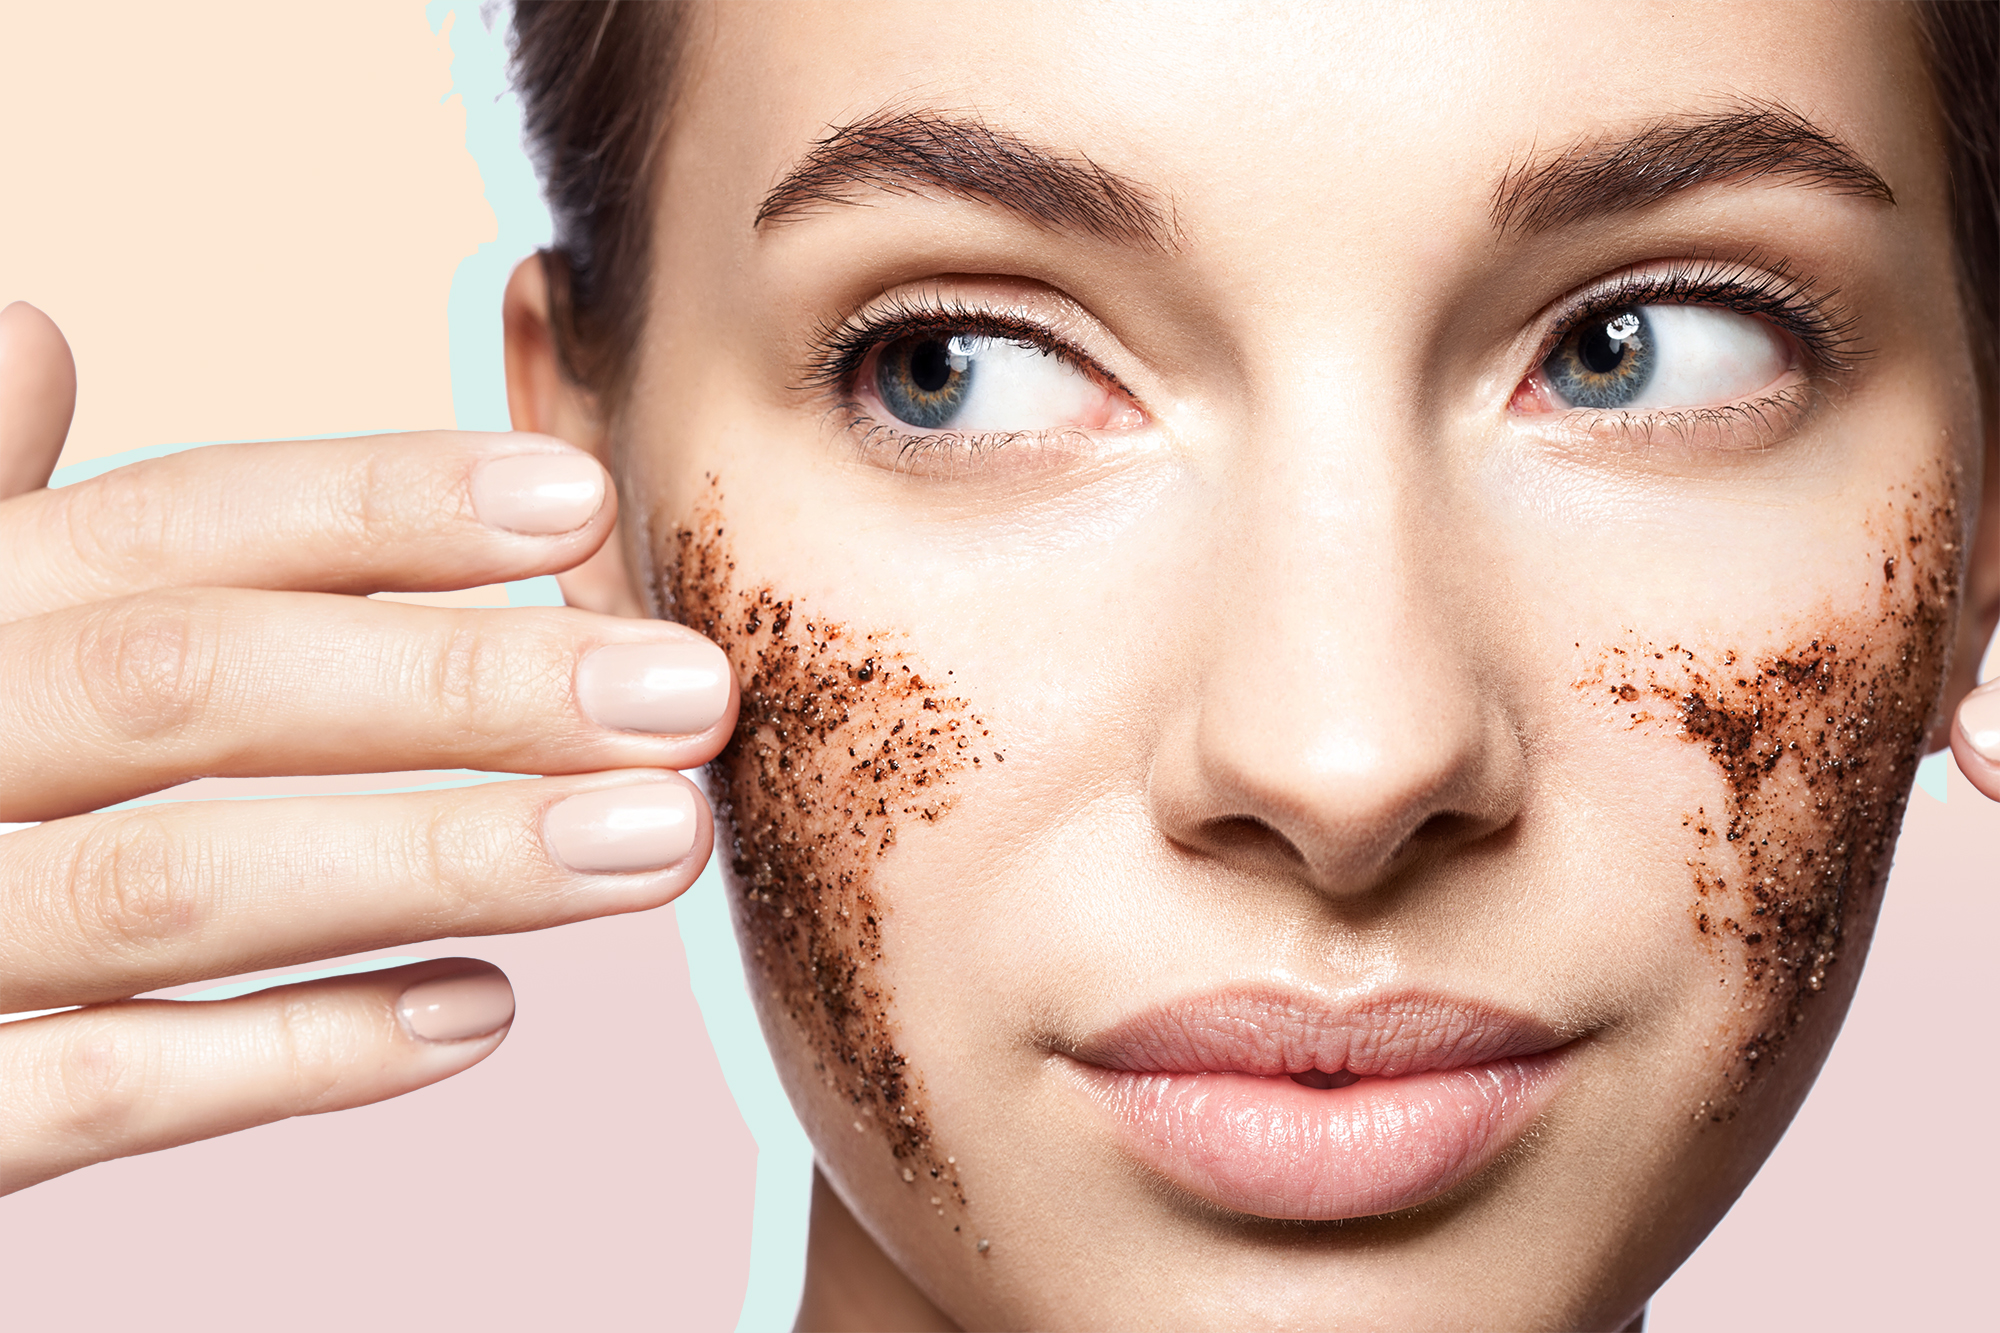 Close-up portrait of a beautiful woman with a coffee scrub on her face doing peeling skin isolated on white background